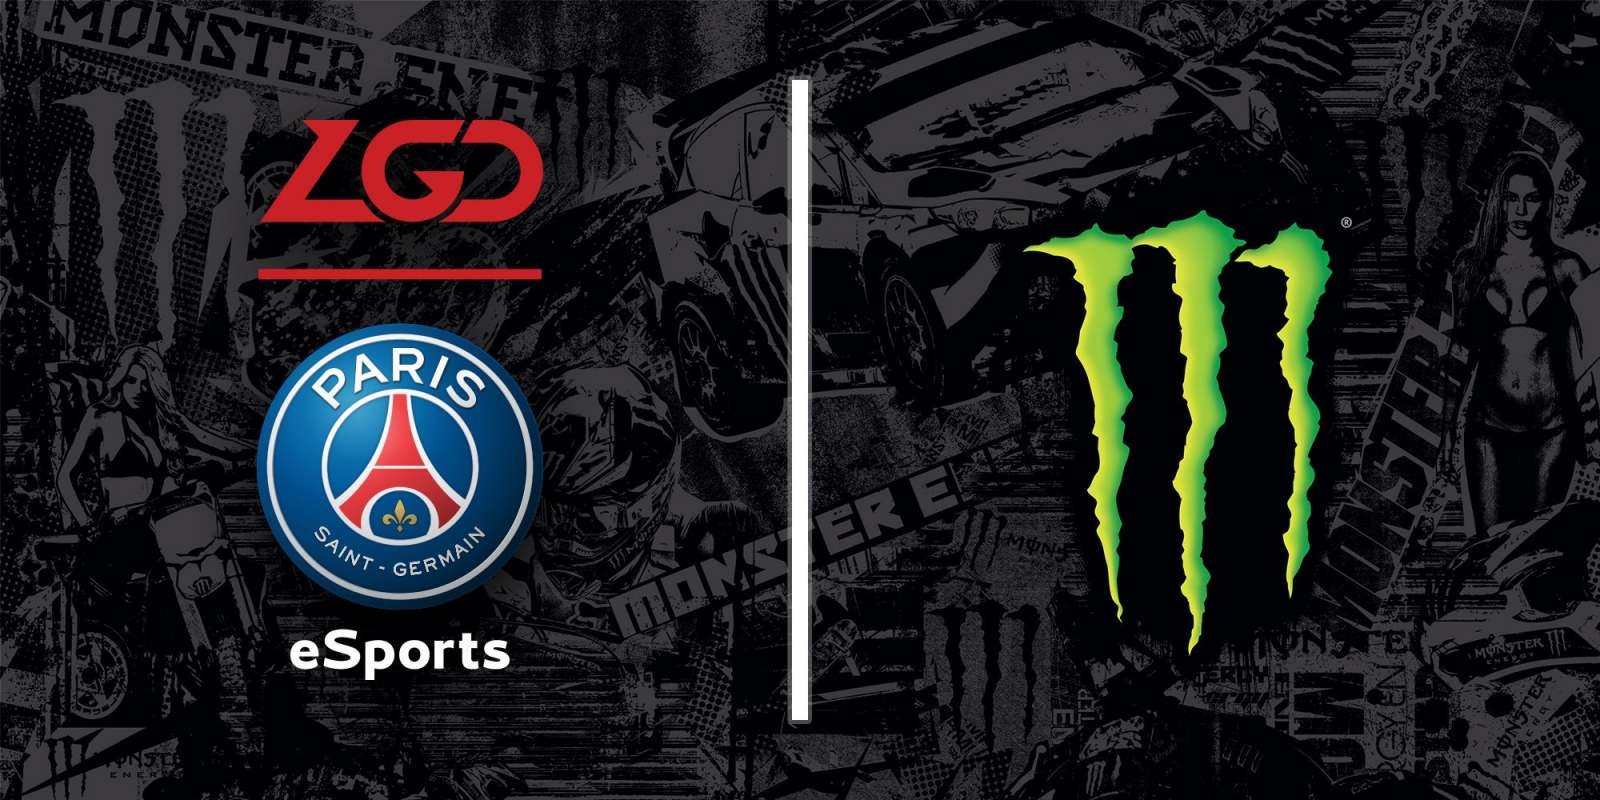 Hero image for Monster Energy's announcement of LGD sponsorshipHero image